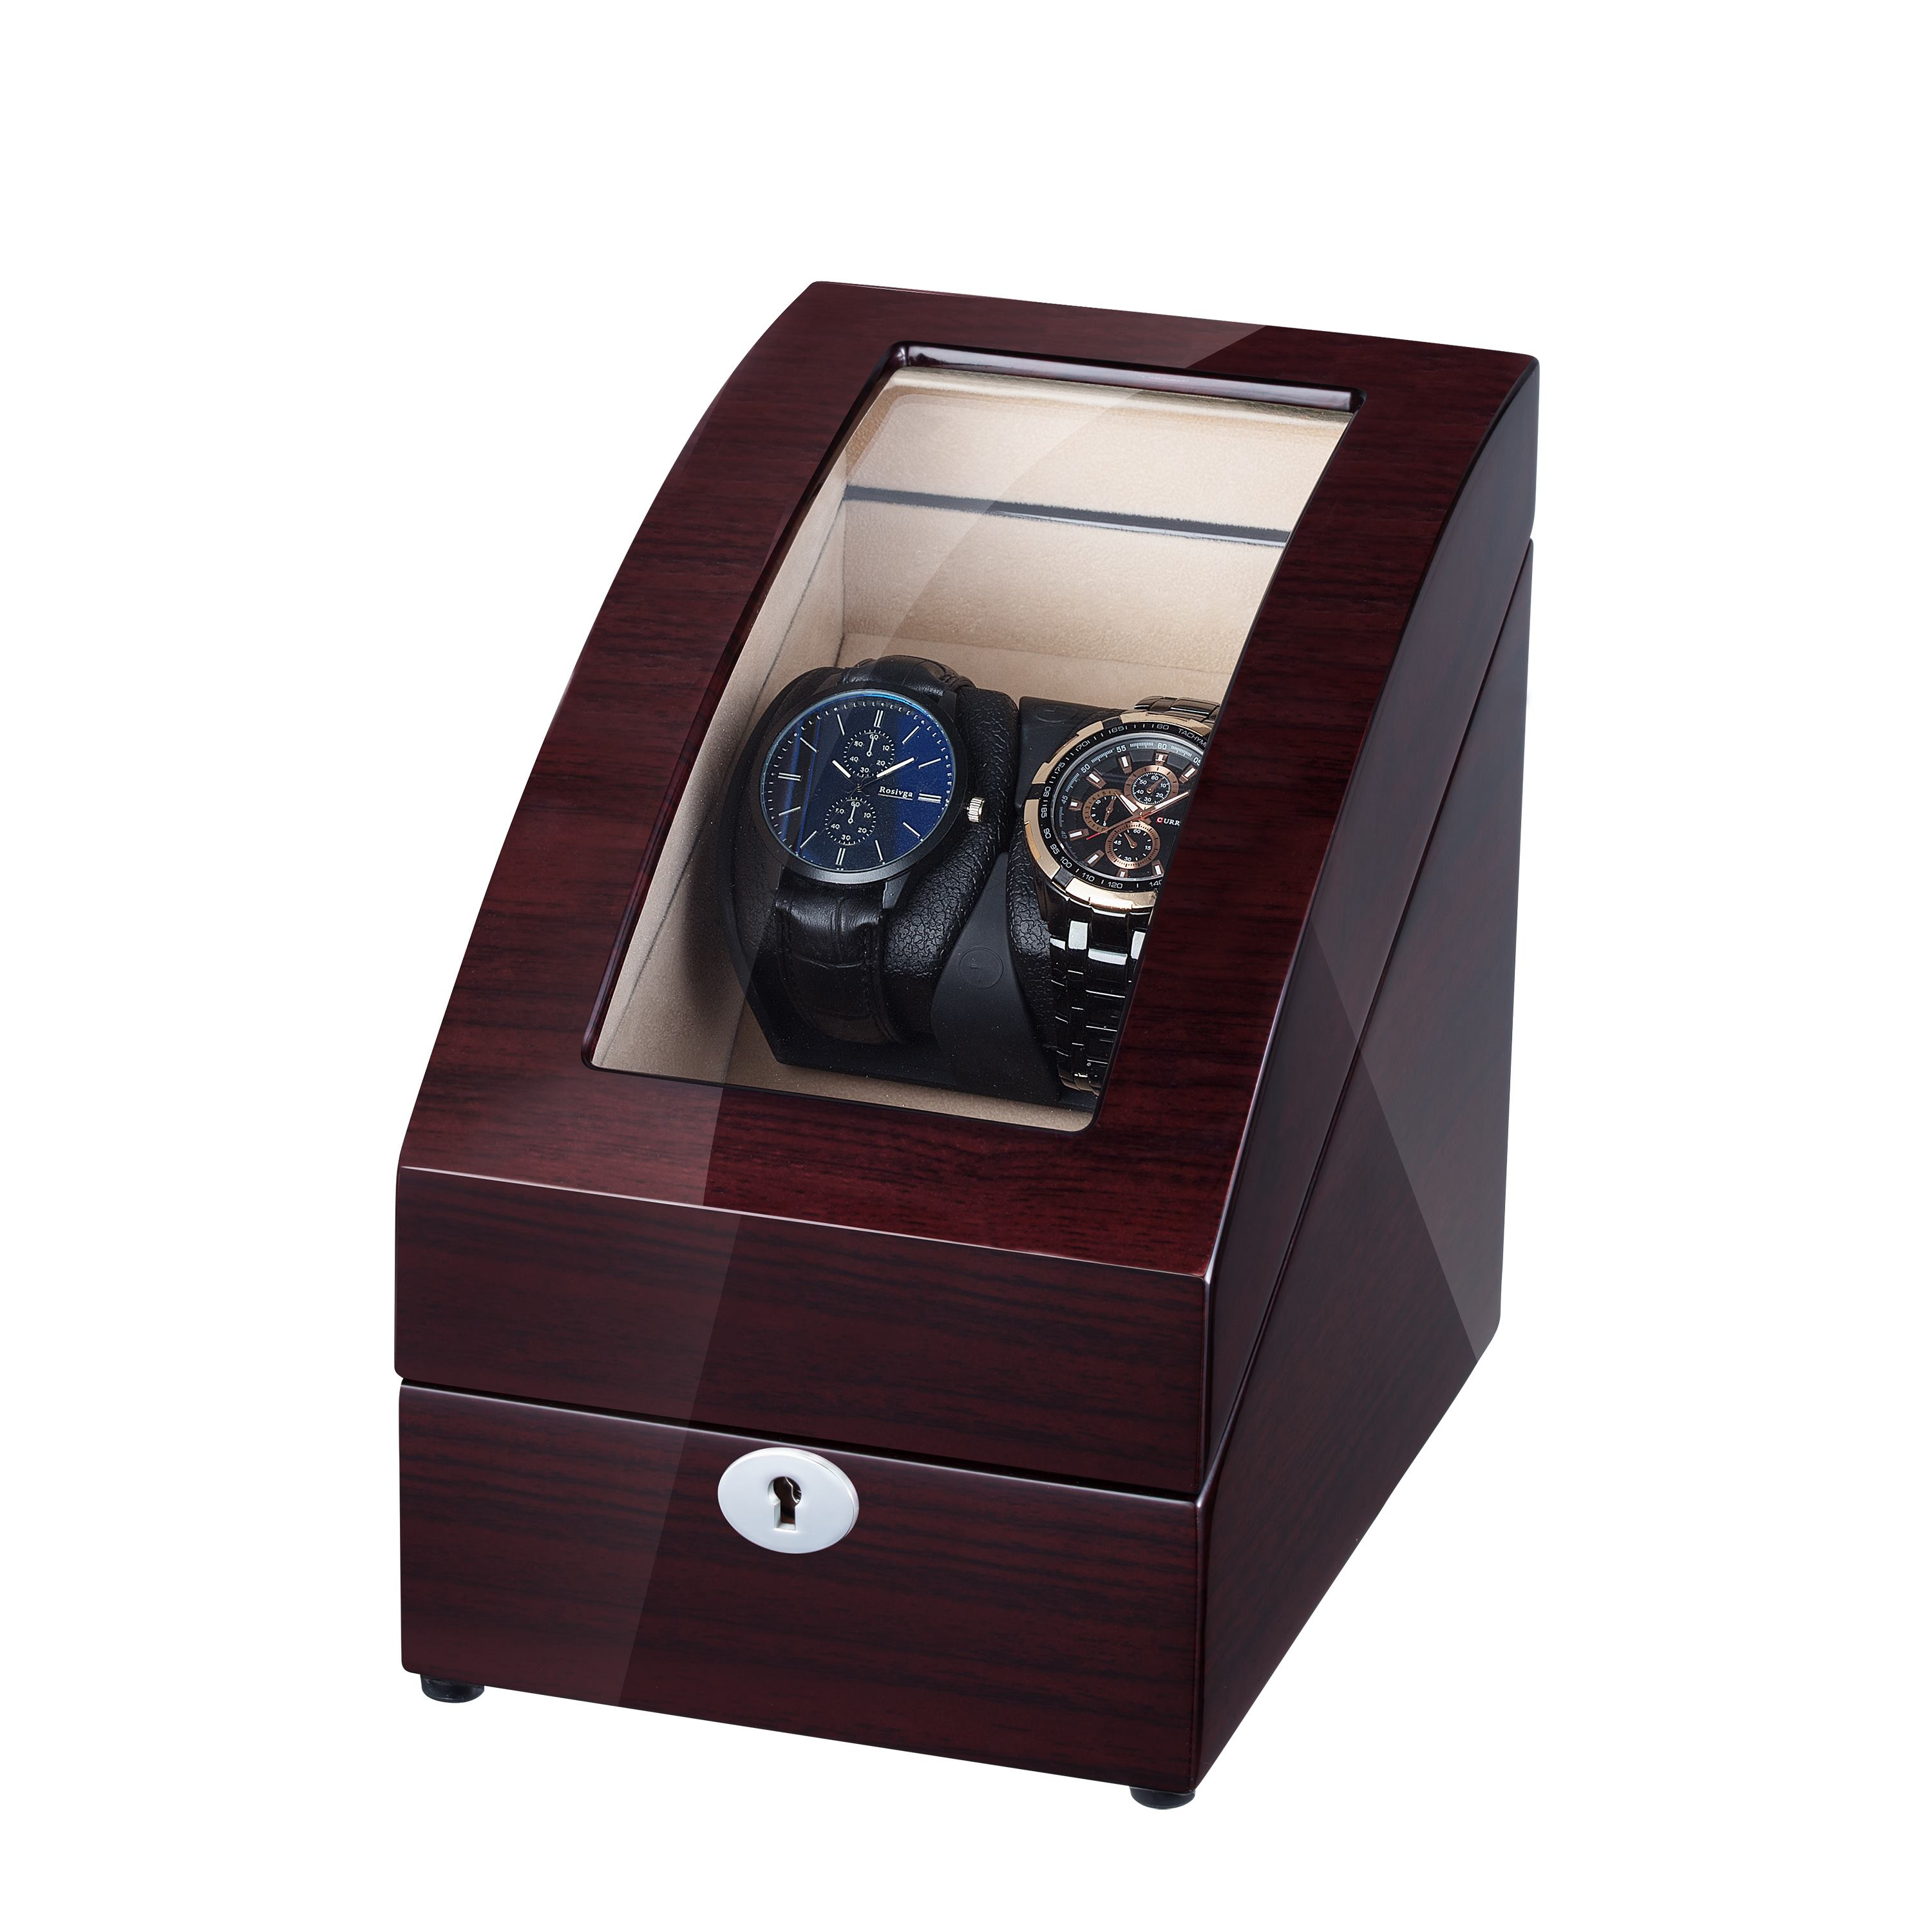 WATCH WINDER FOR 4 WATCHES, WITH STORAGE